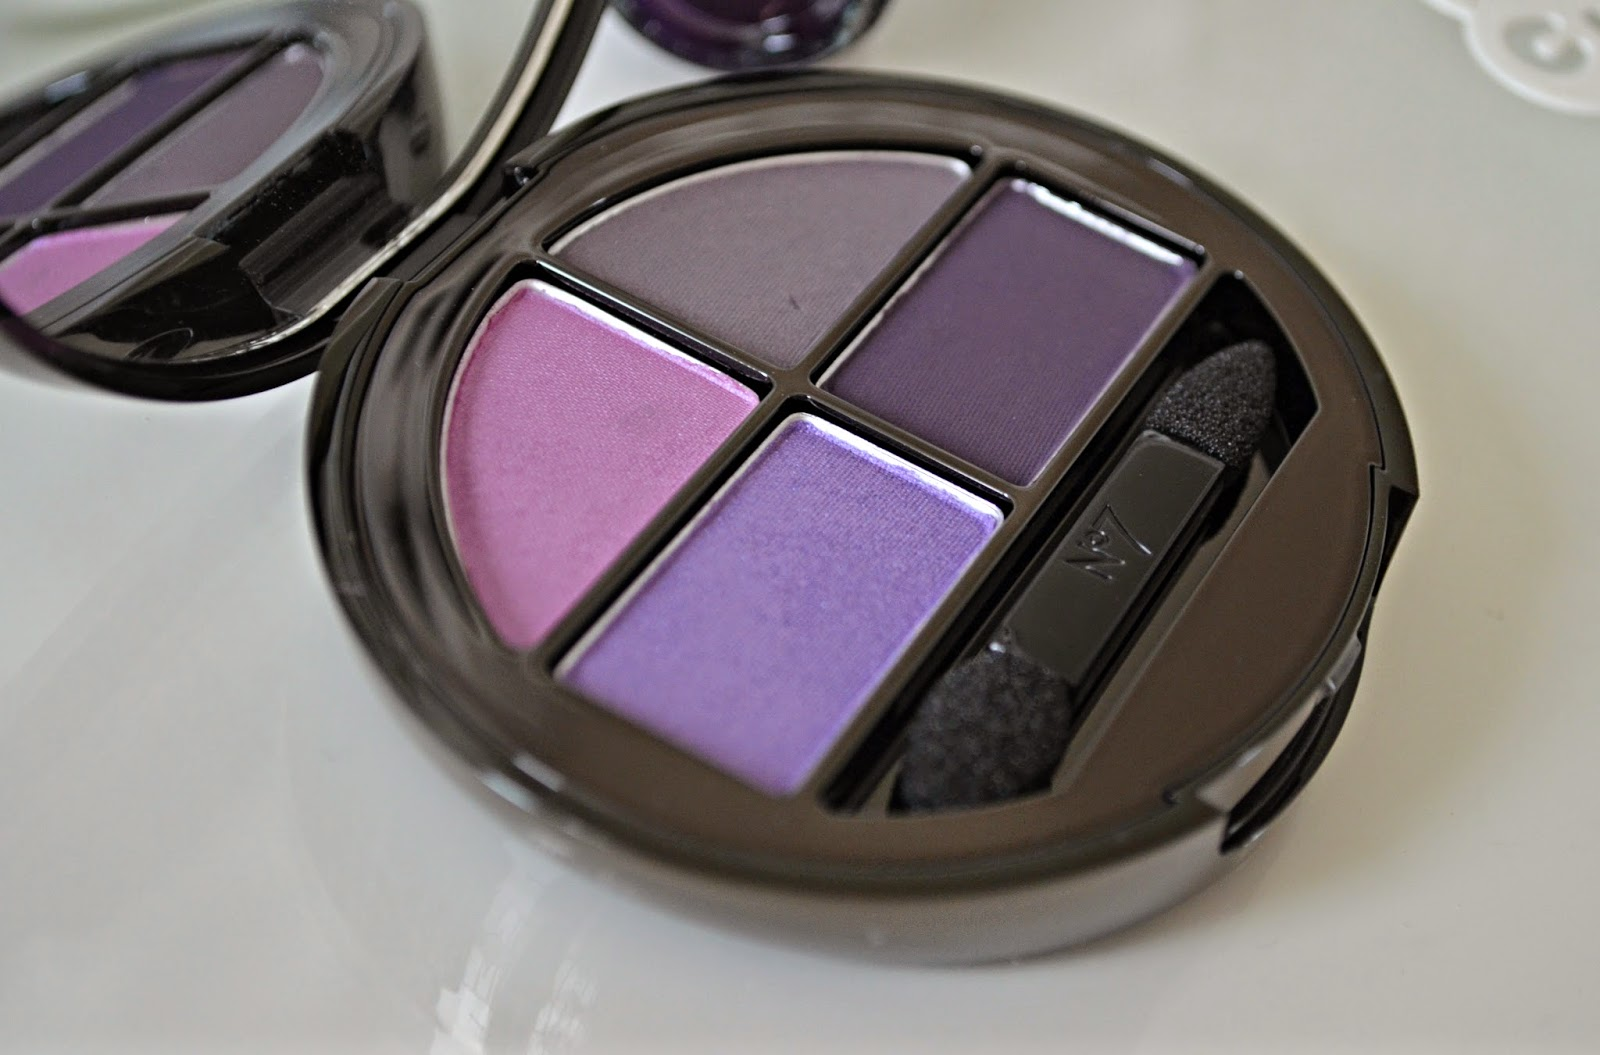 No7 Stay Perfect Eyeshadow Quad in Purple Haze